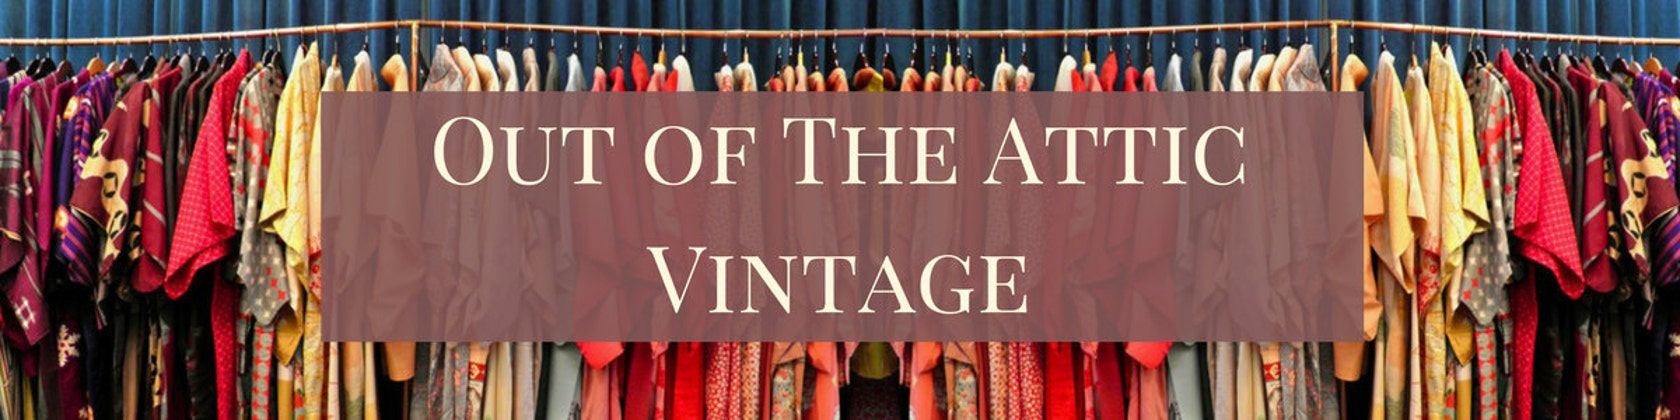 0e07d6ebbf1c6 Out of the Attic Vintage by OutofAtticVintage on Etsy